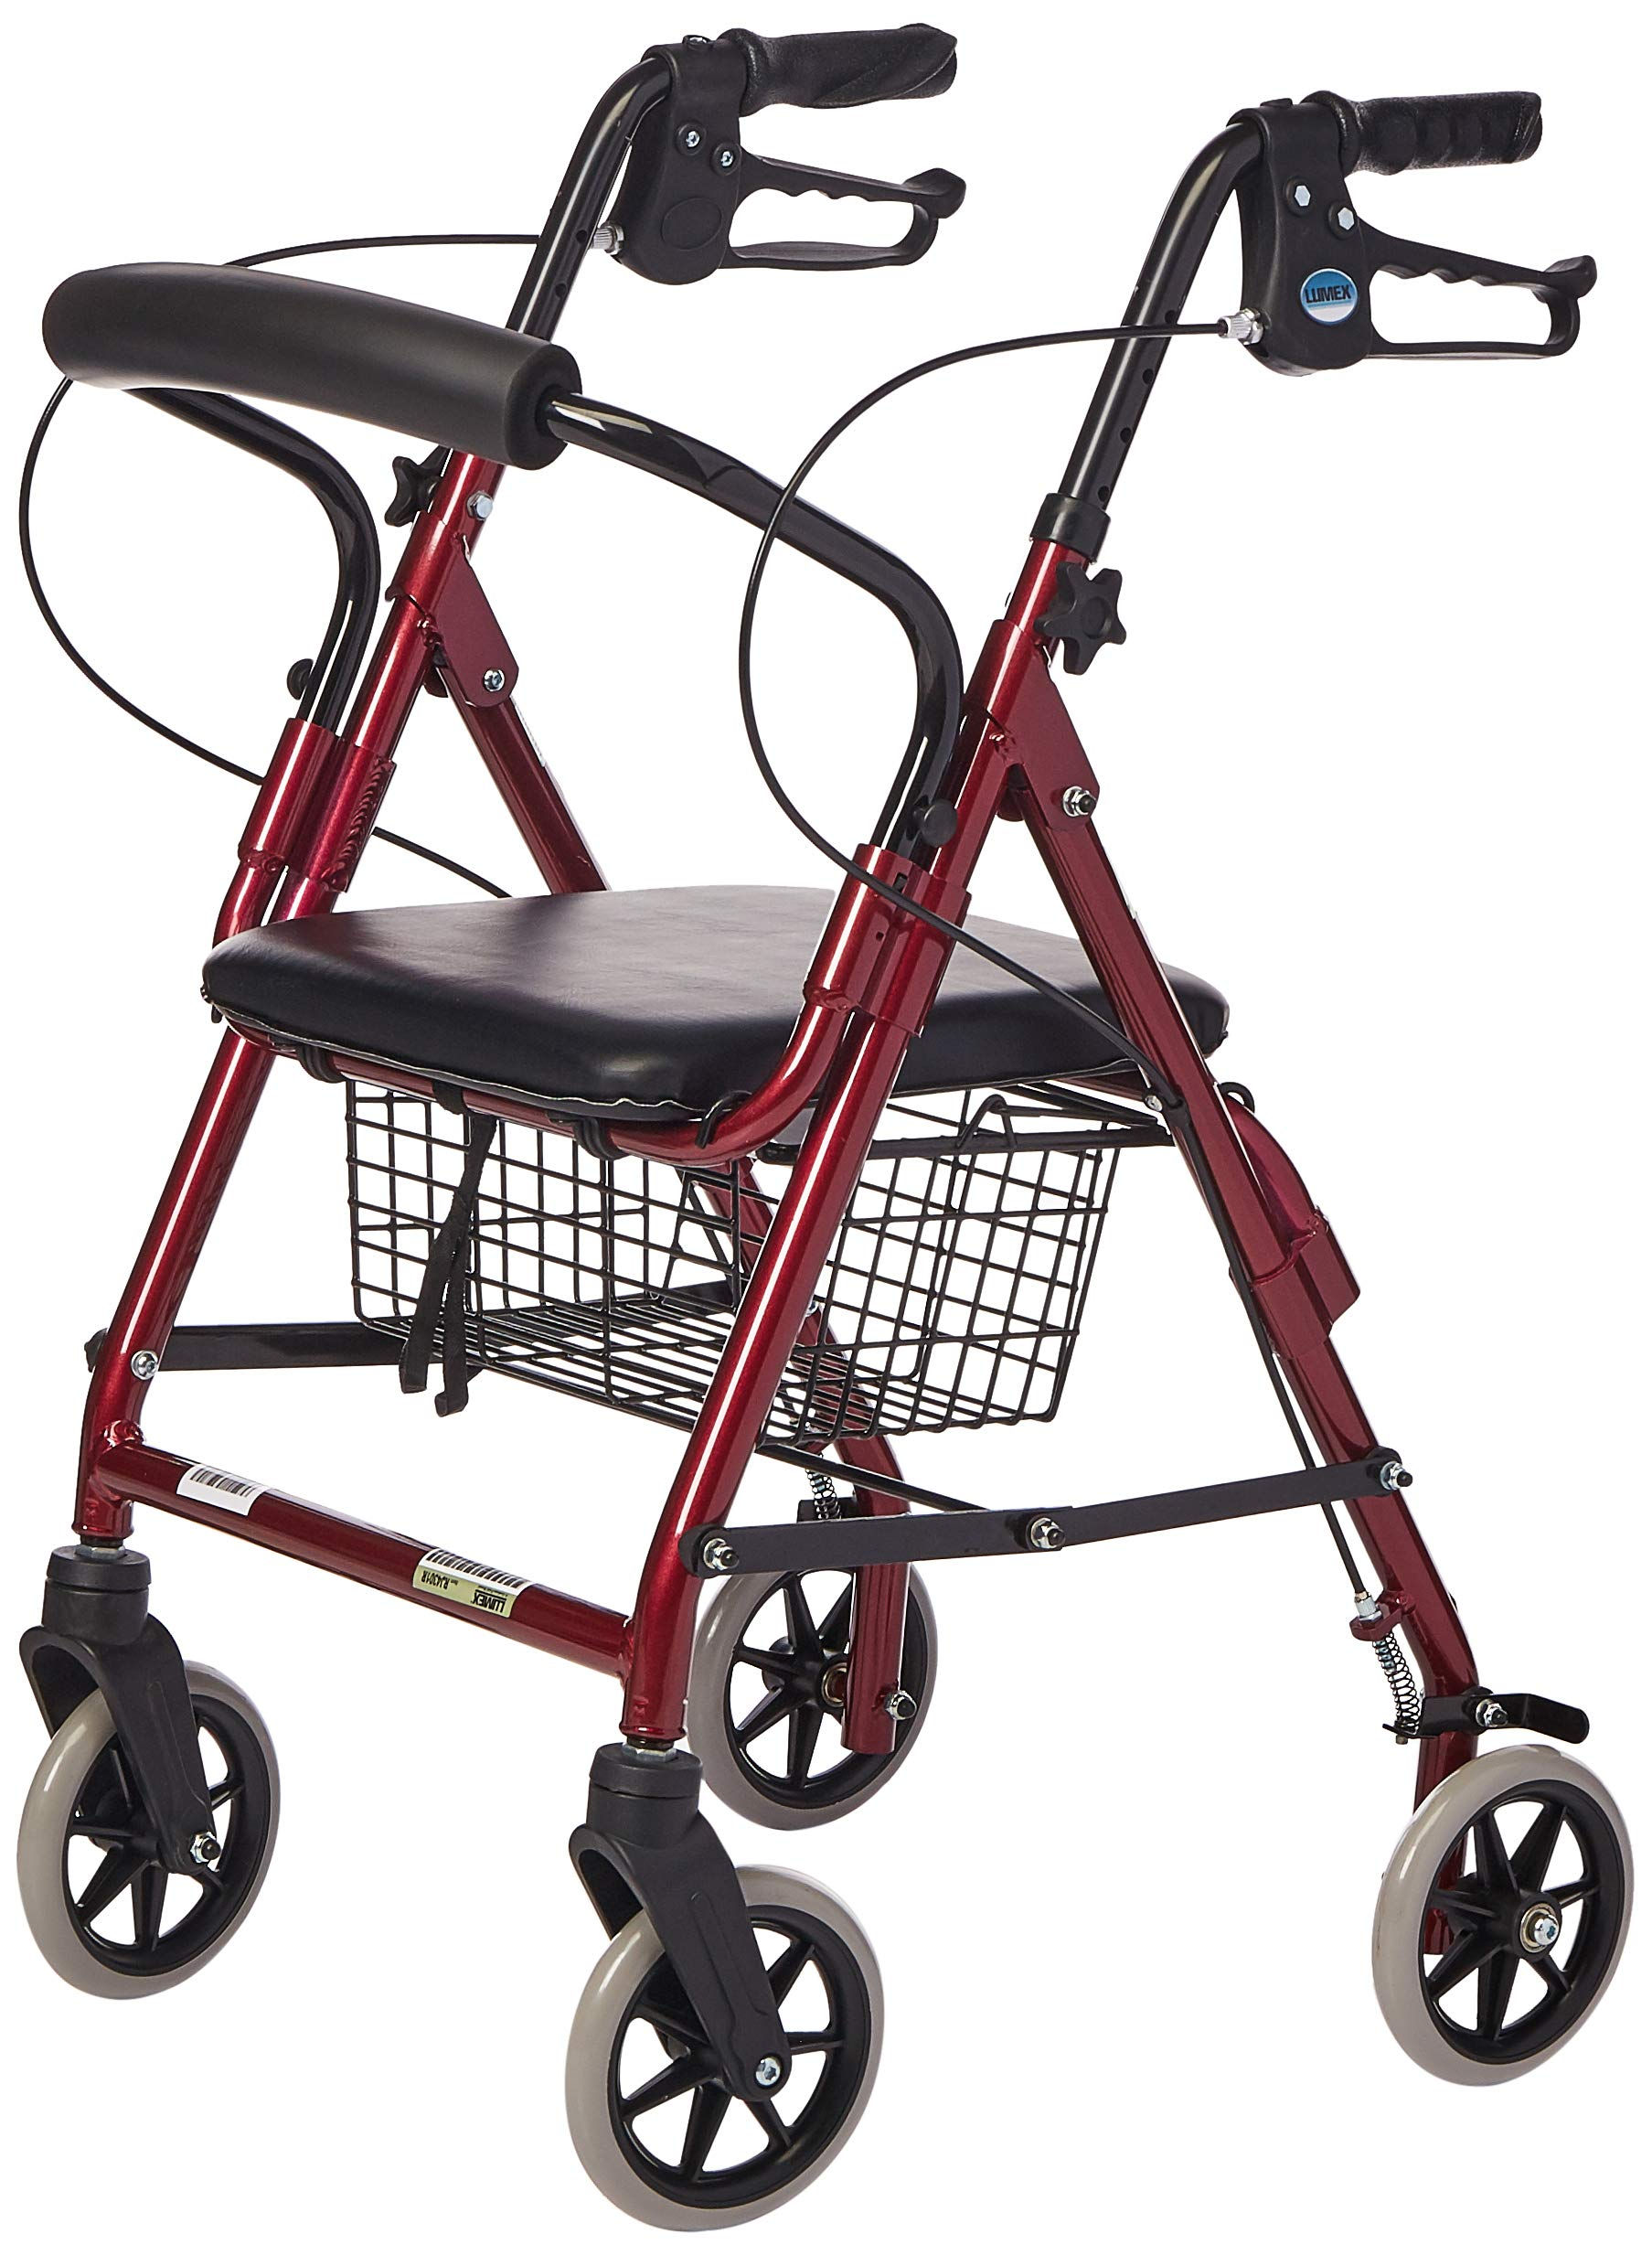 Lumex Walkabout Lite Compact Rollator, Great for Shorter Users and Kids, Burgundy, RJ4301R by Graham-Field